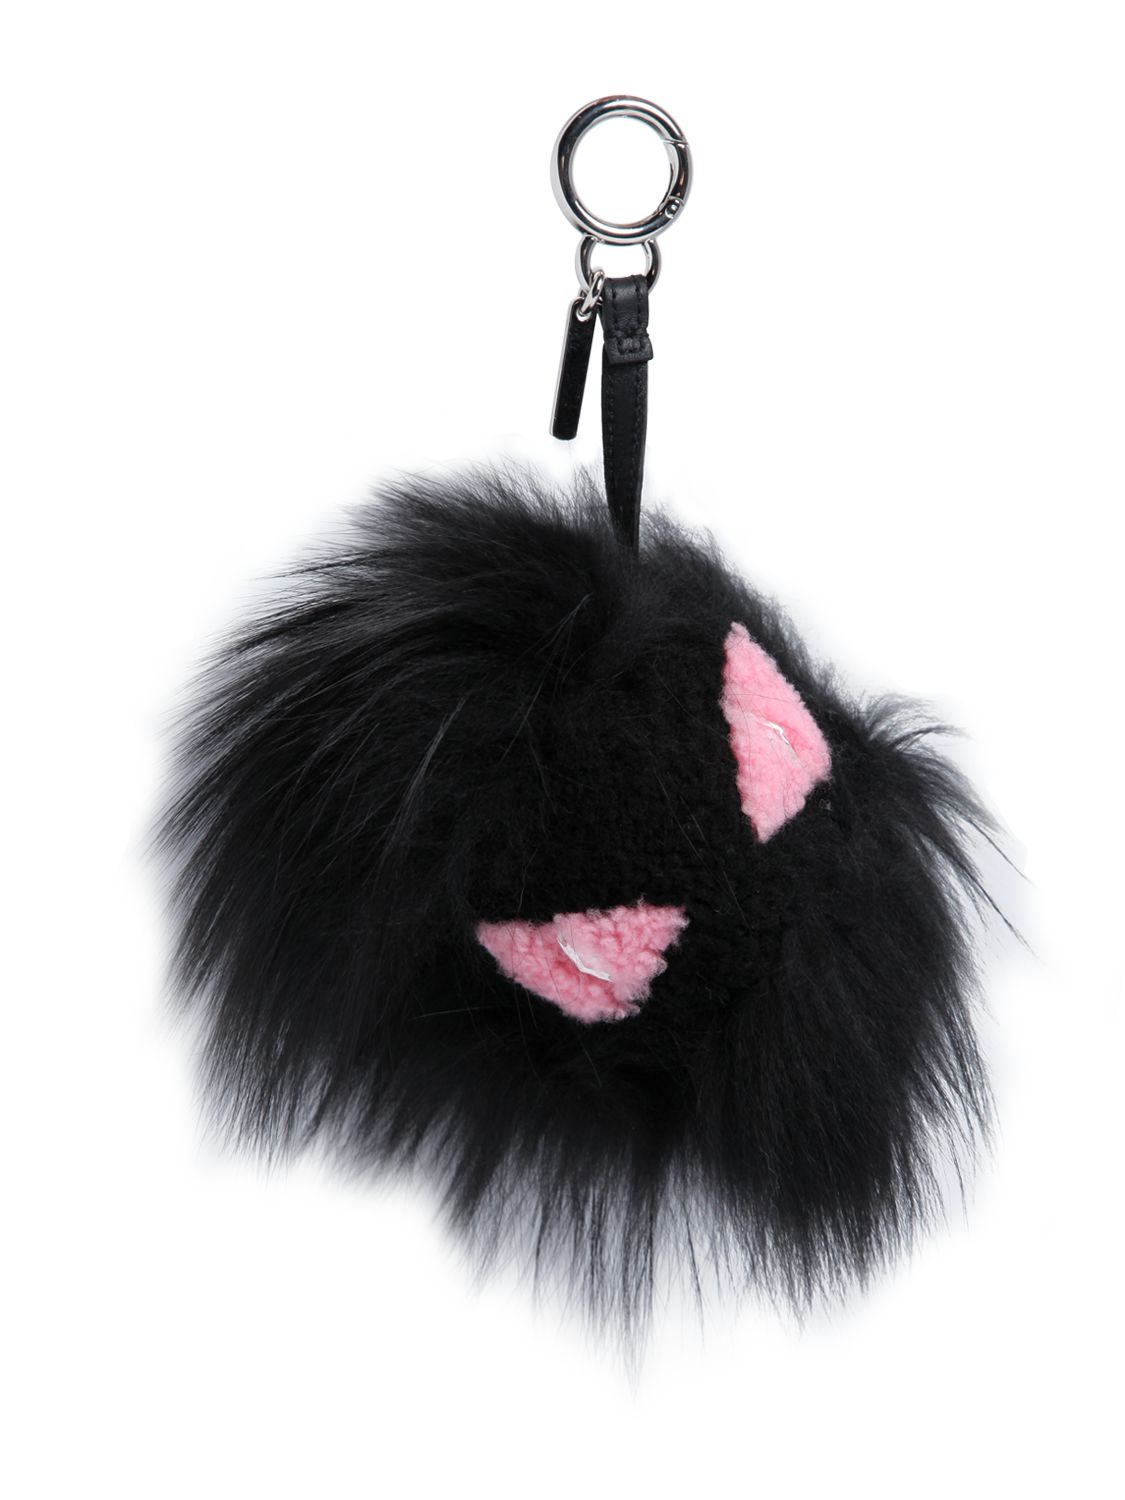 Fendi Monster bag charm - Black iCL7YkTp